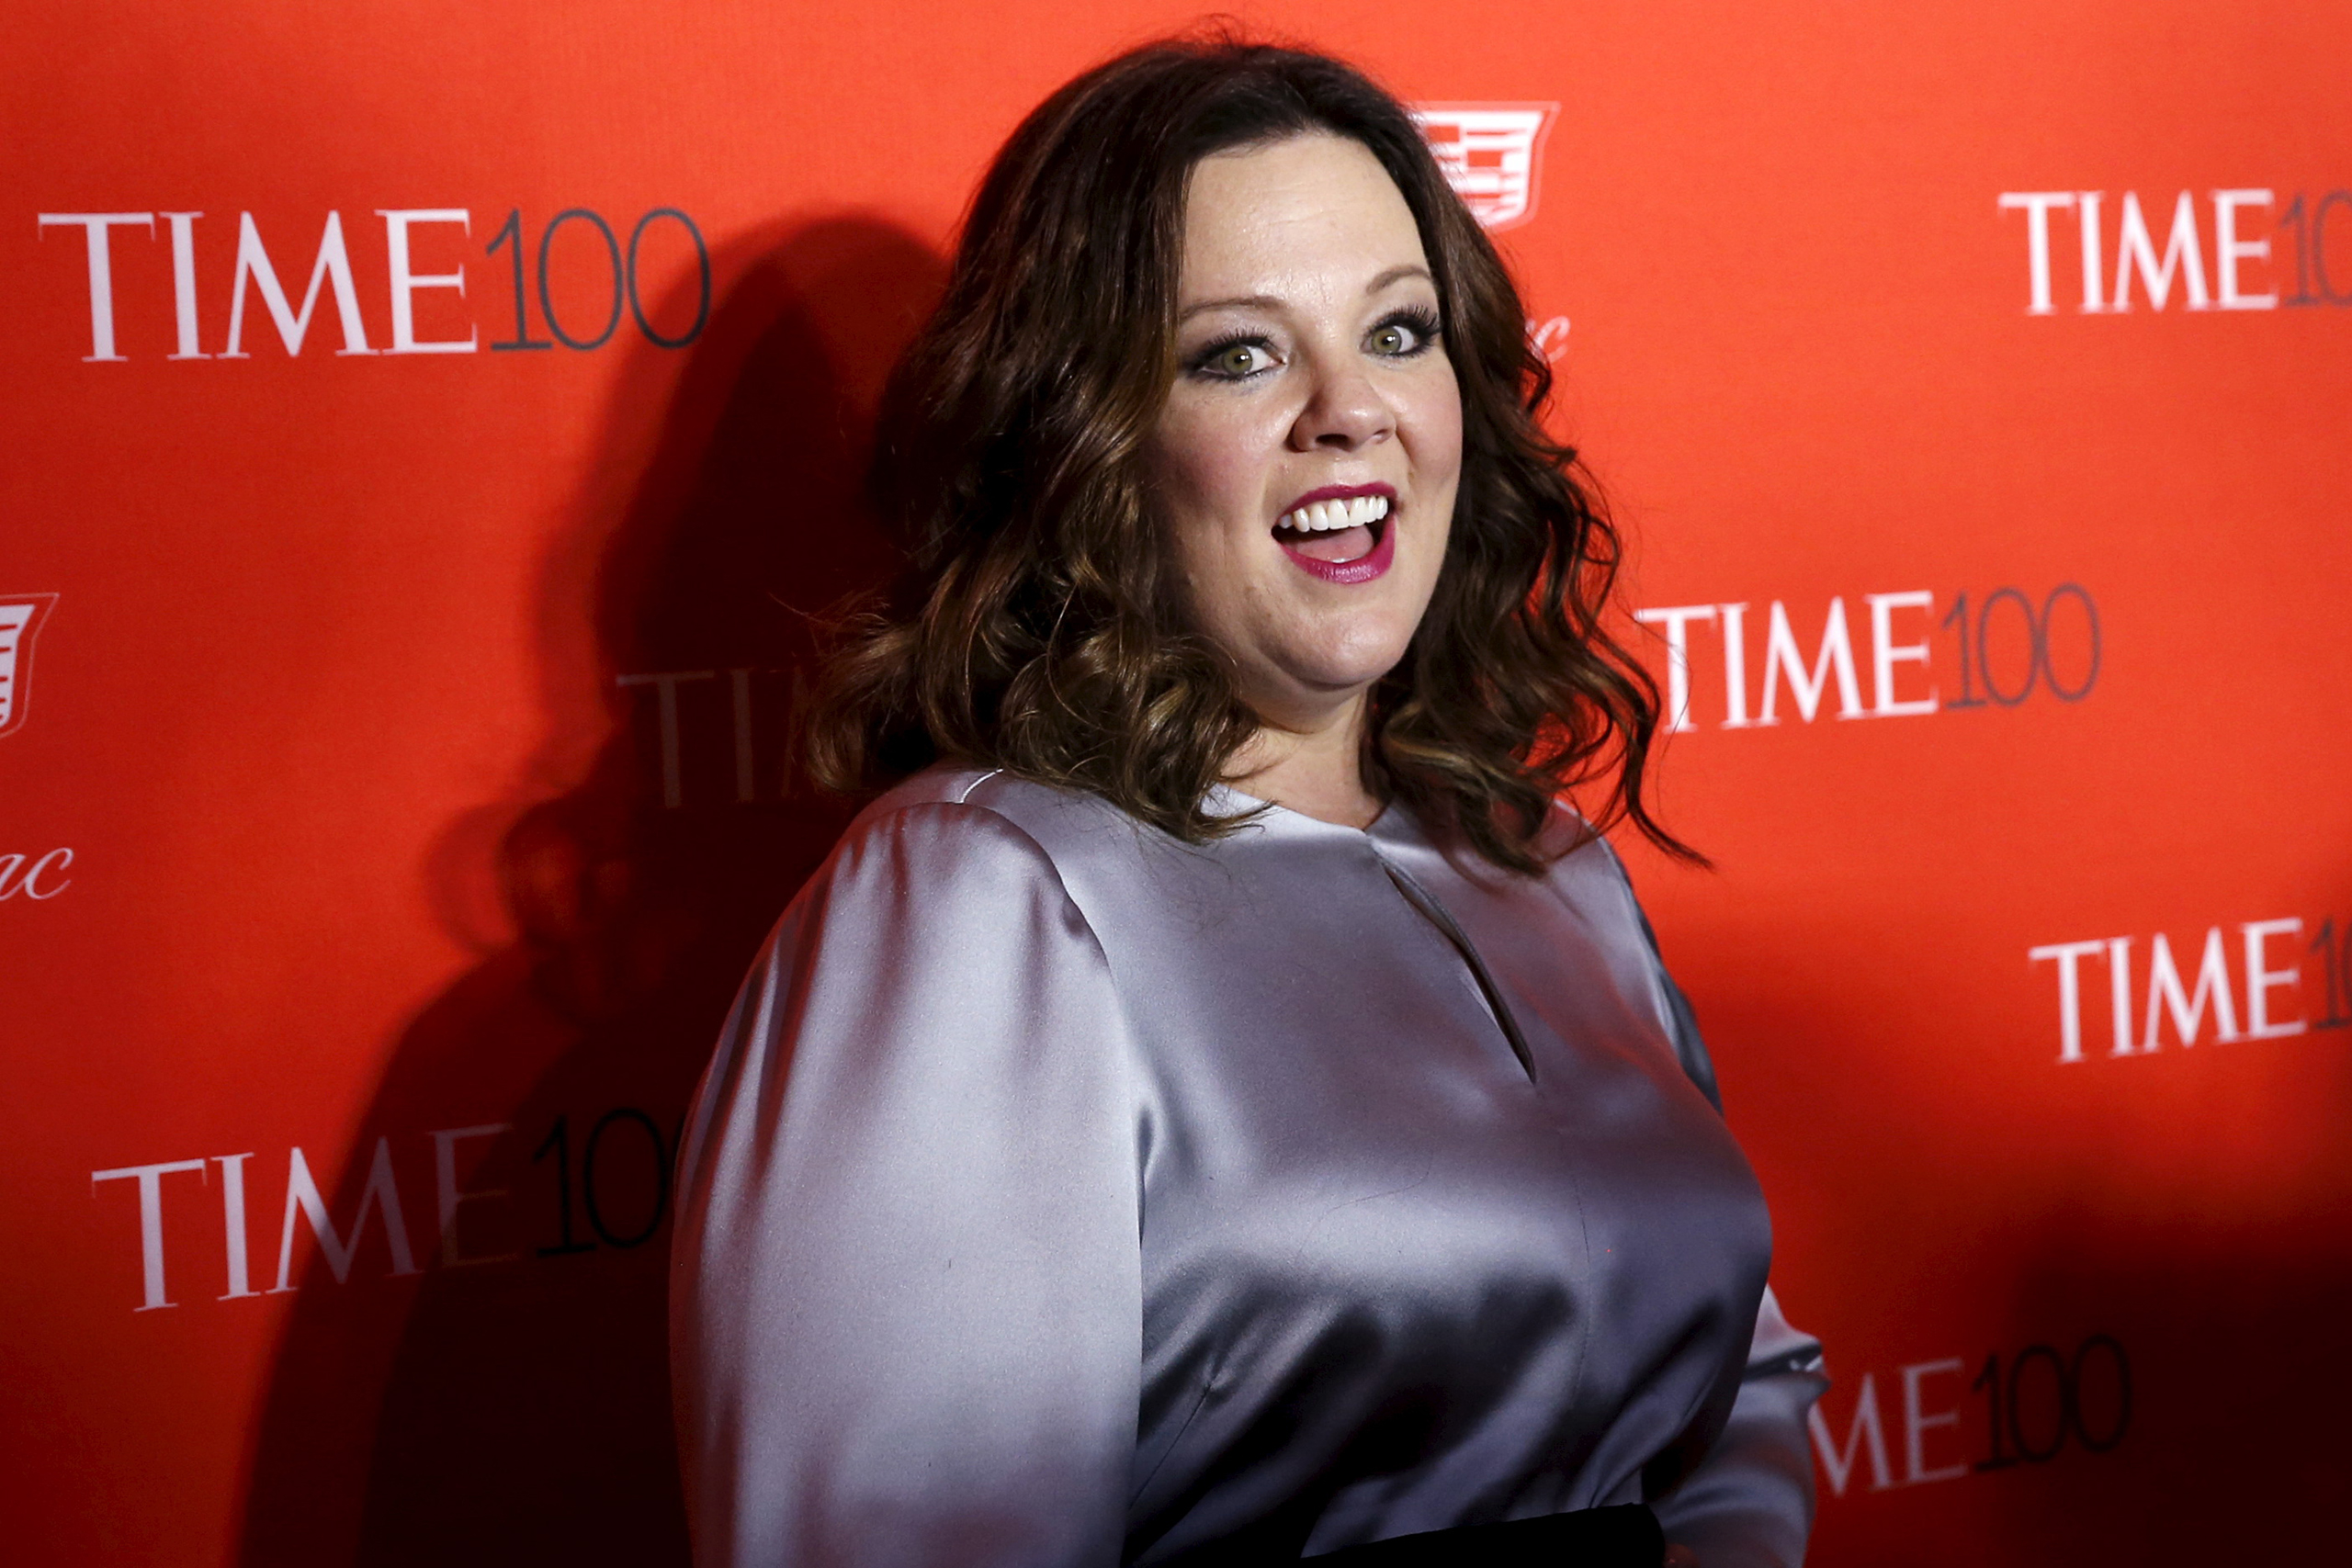 Actress Melissa McCarthy poses for photographers on the red carpet as she arrives for the TIME 100 Gala in New York, April 26, 2016.